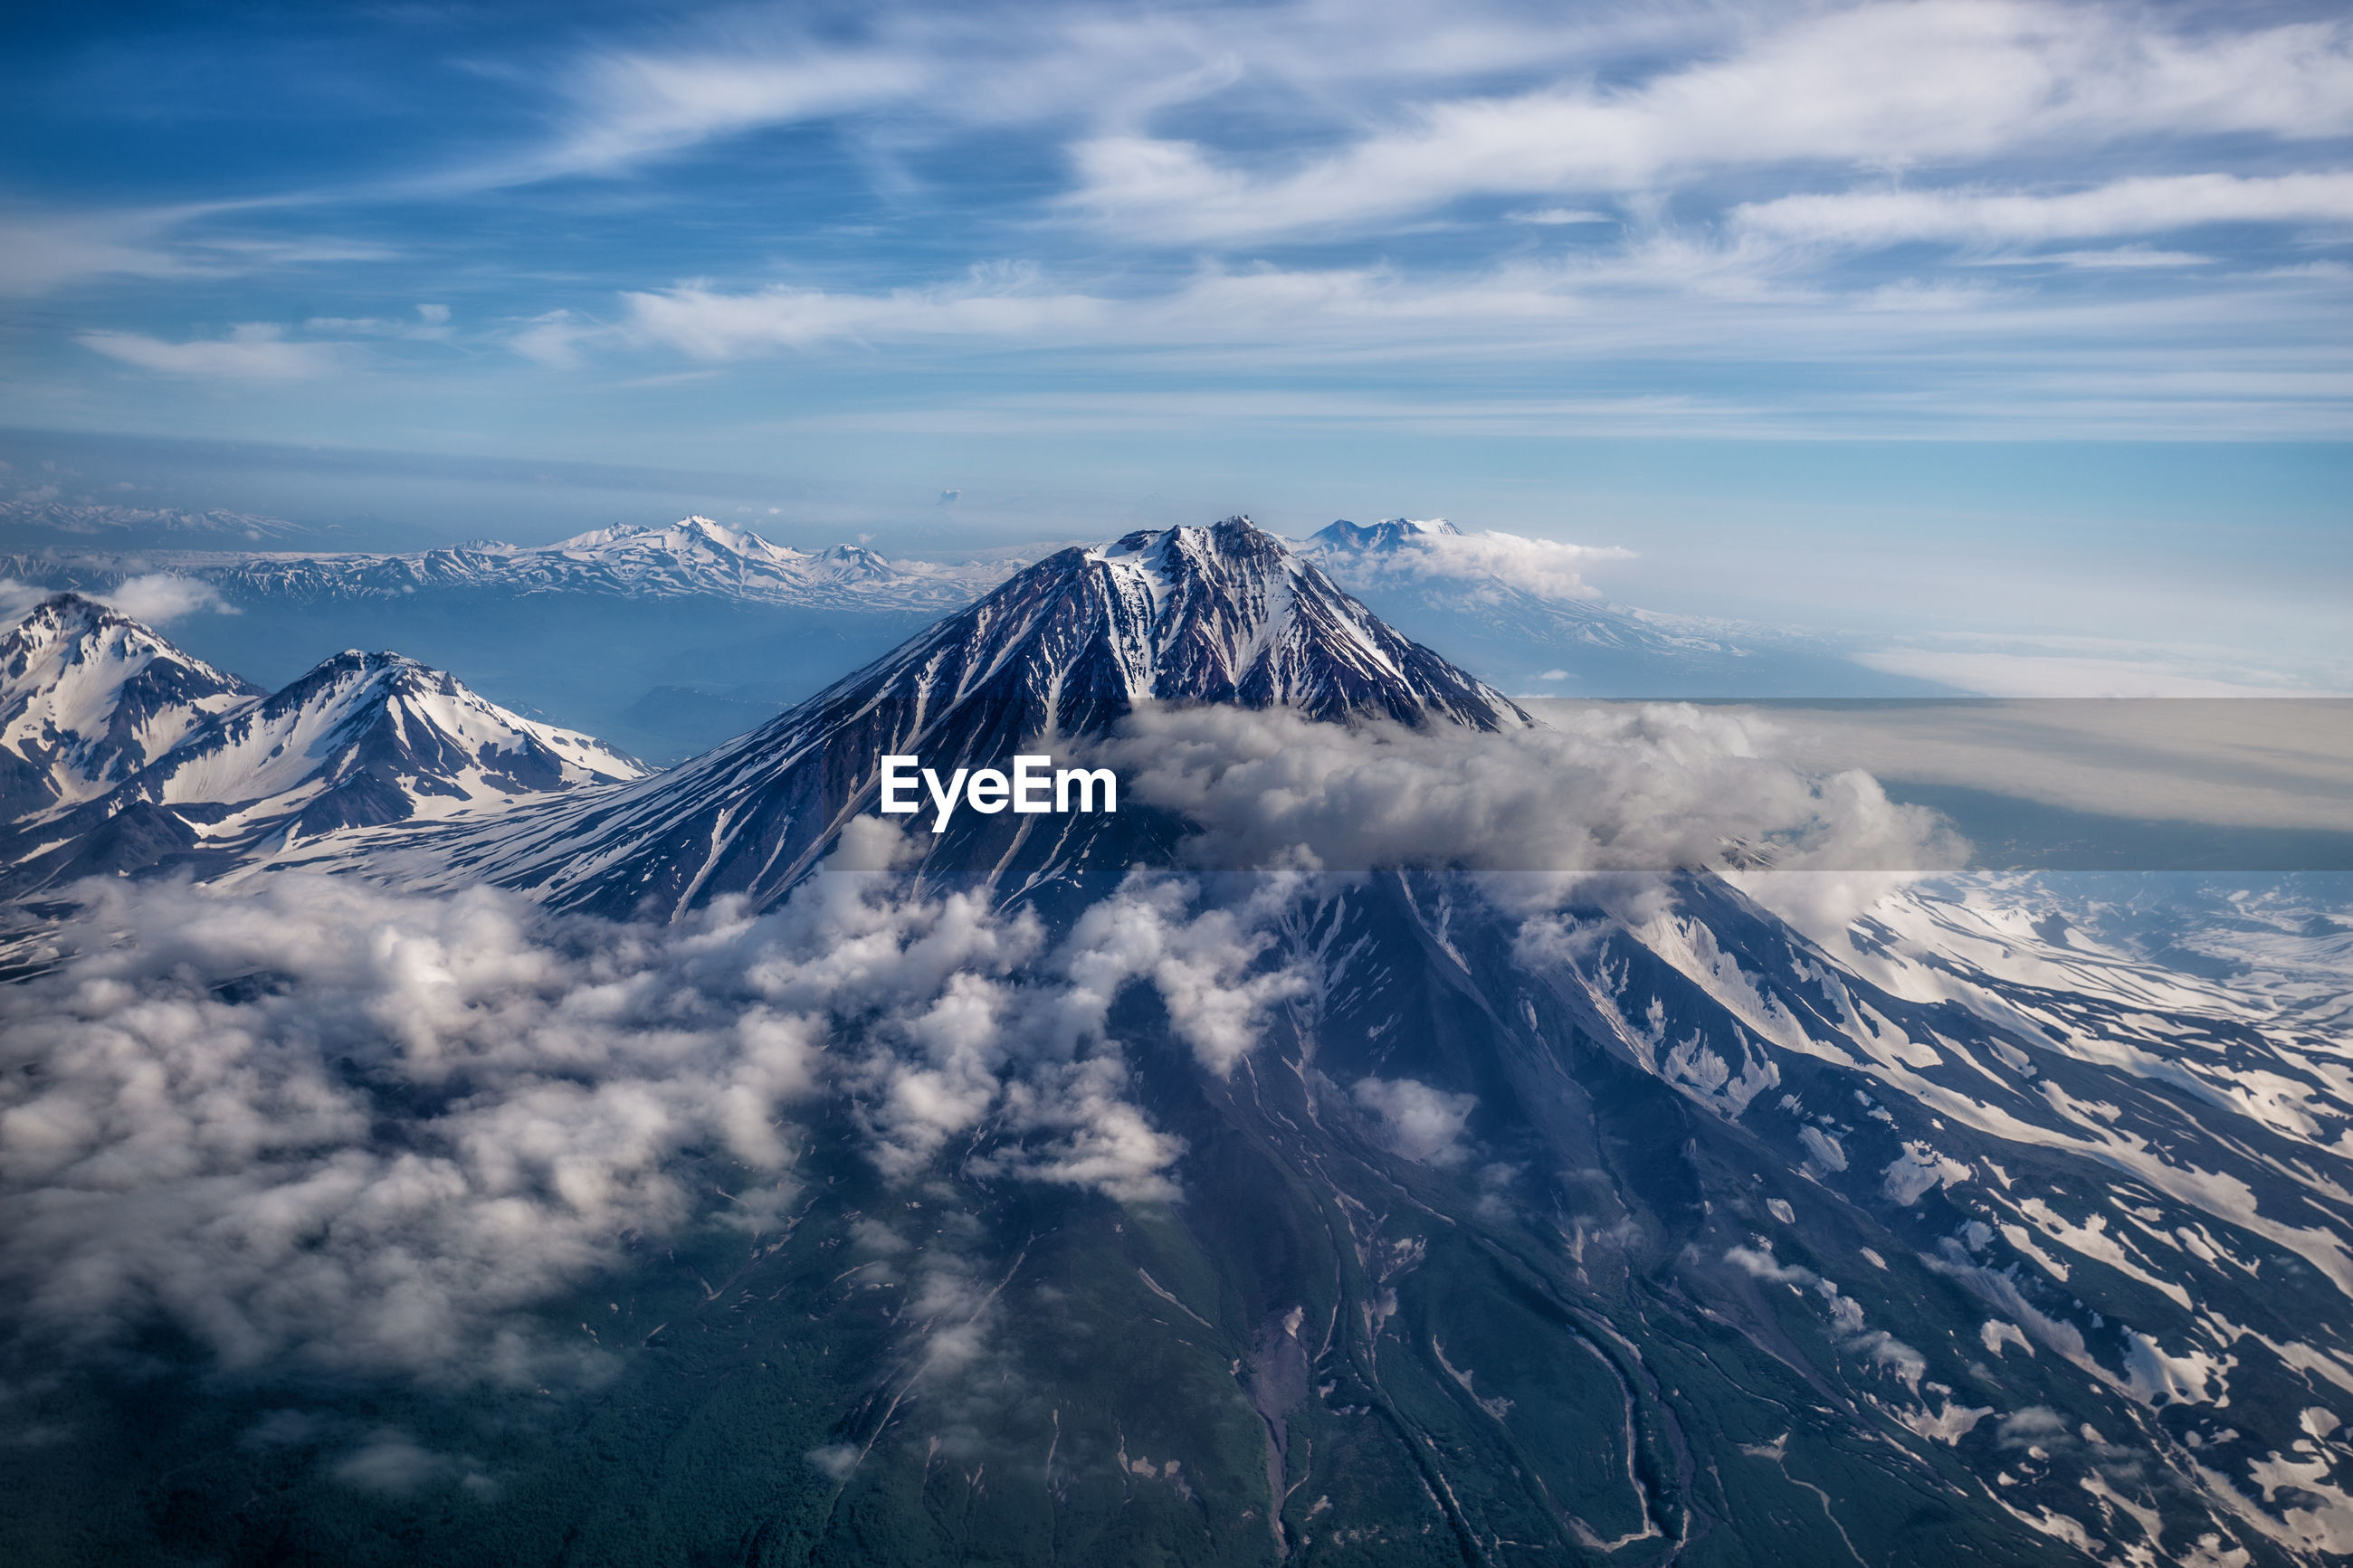 AERIAL VIEW OF SNOWCAPPED MOUNTAIN RANGE AGAINST SKY